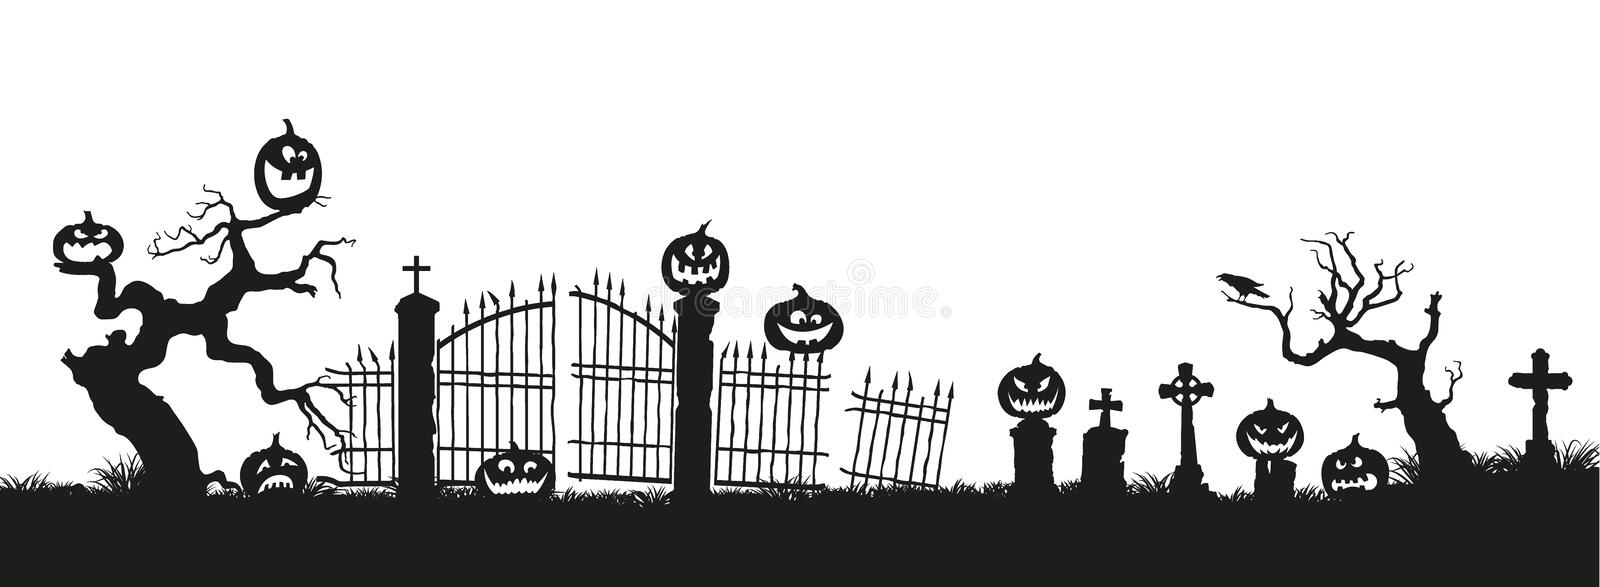 Holiday Halloween. Black silhouettes of pumpkins on the cemetery on white background. Graveyard and broken trees royalty free illustration